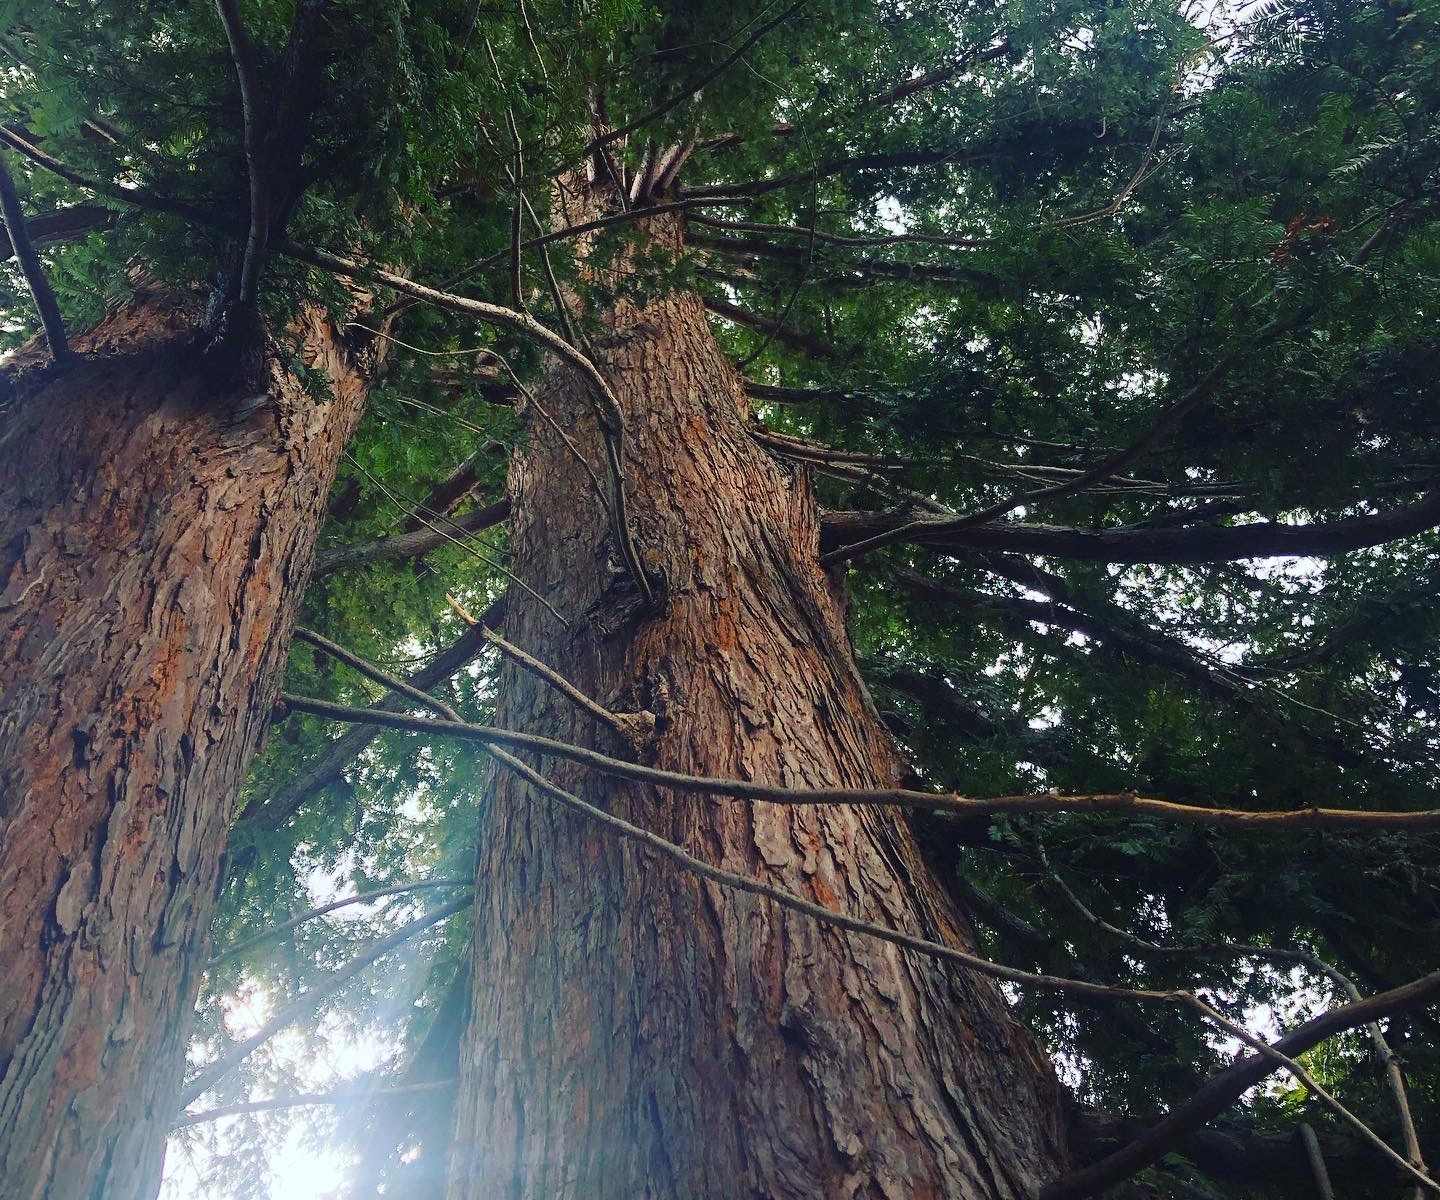 View of redwoods looking up from below